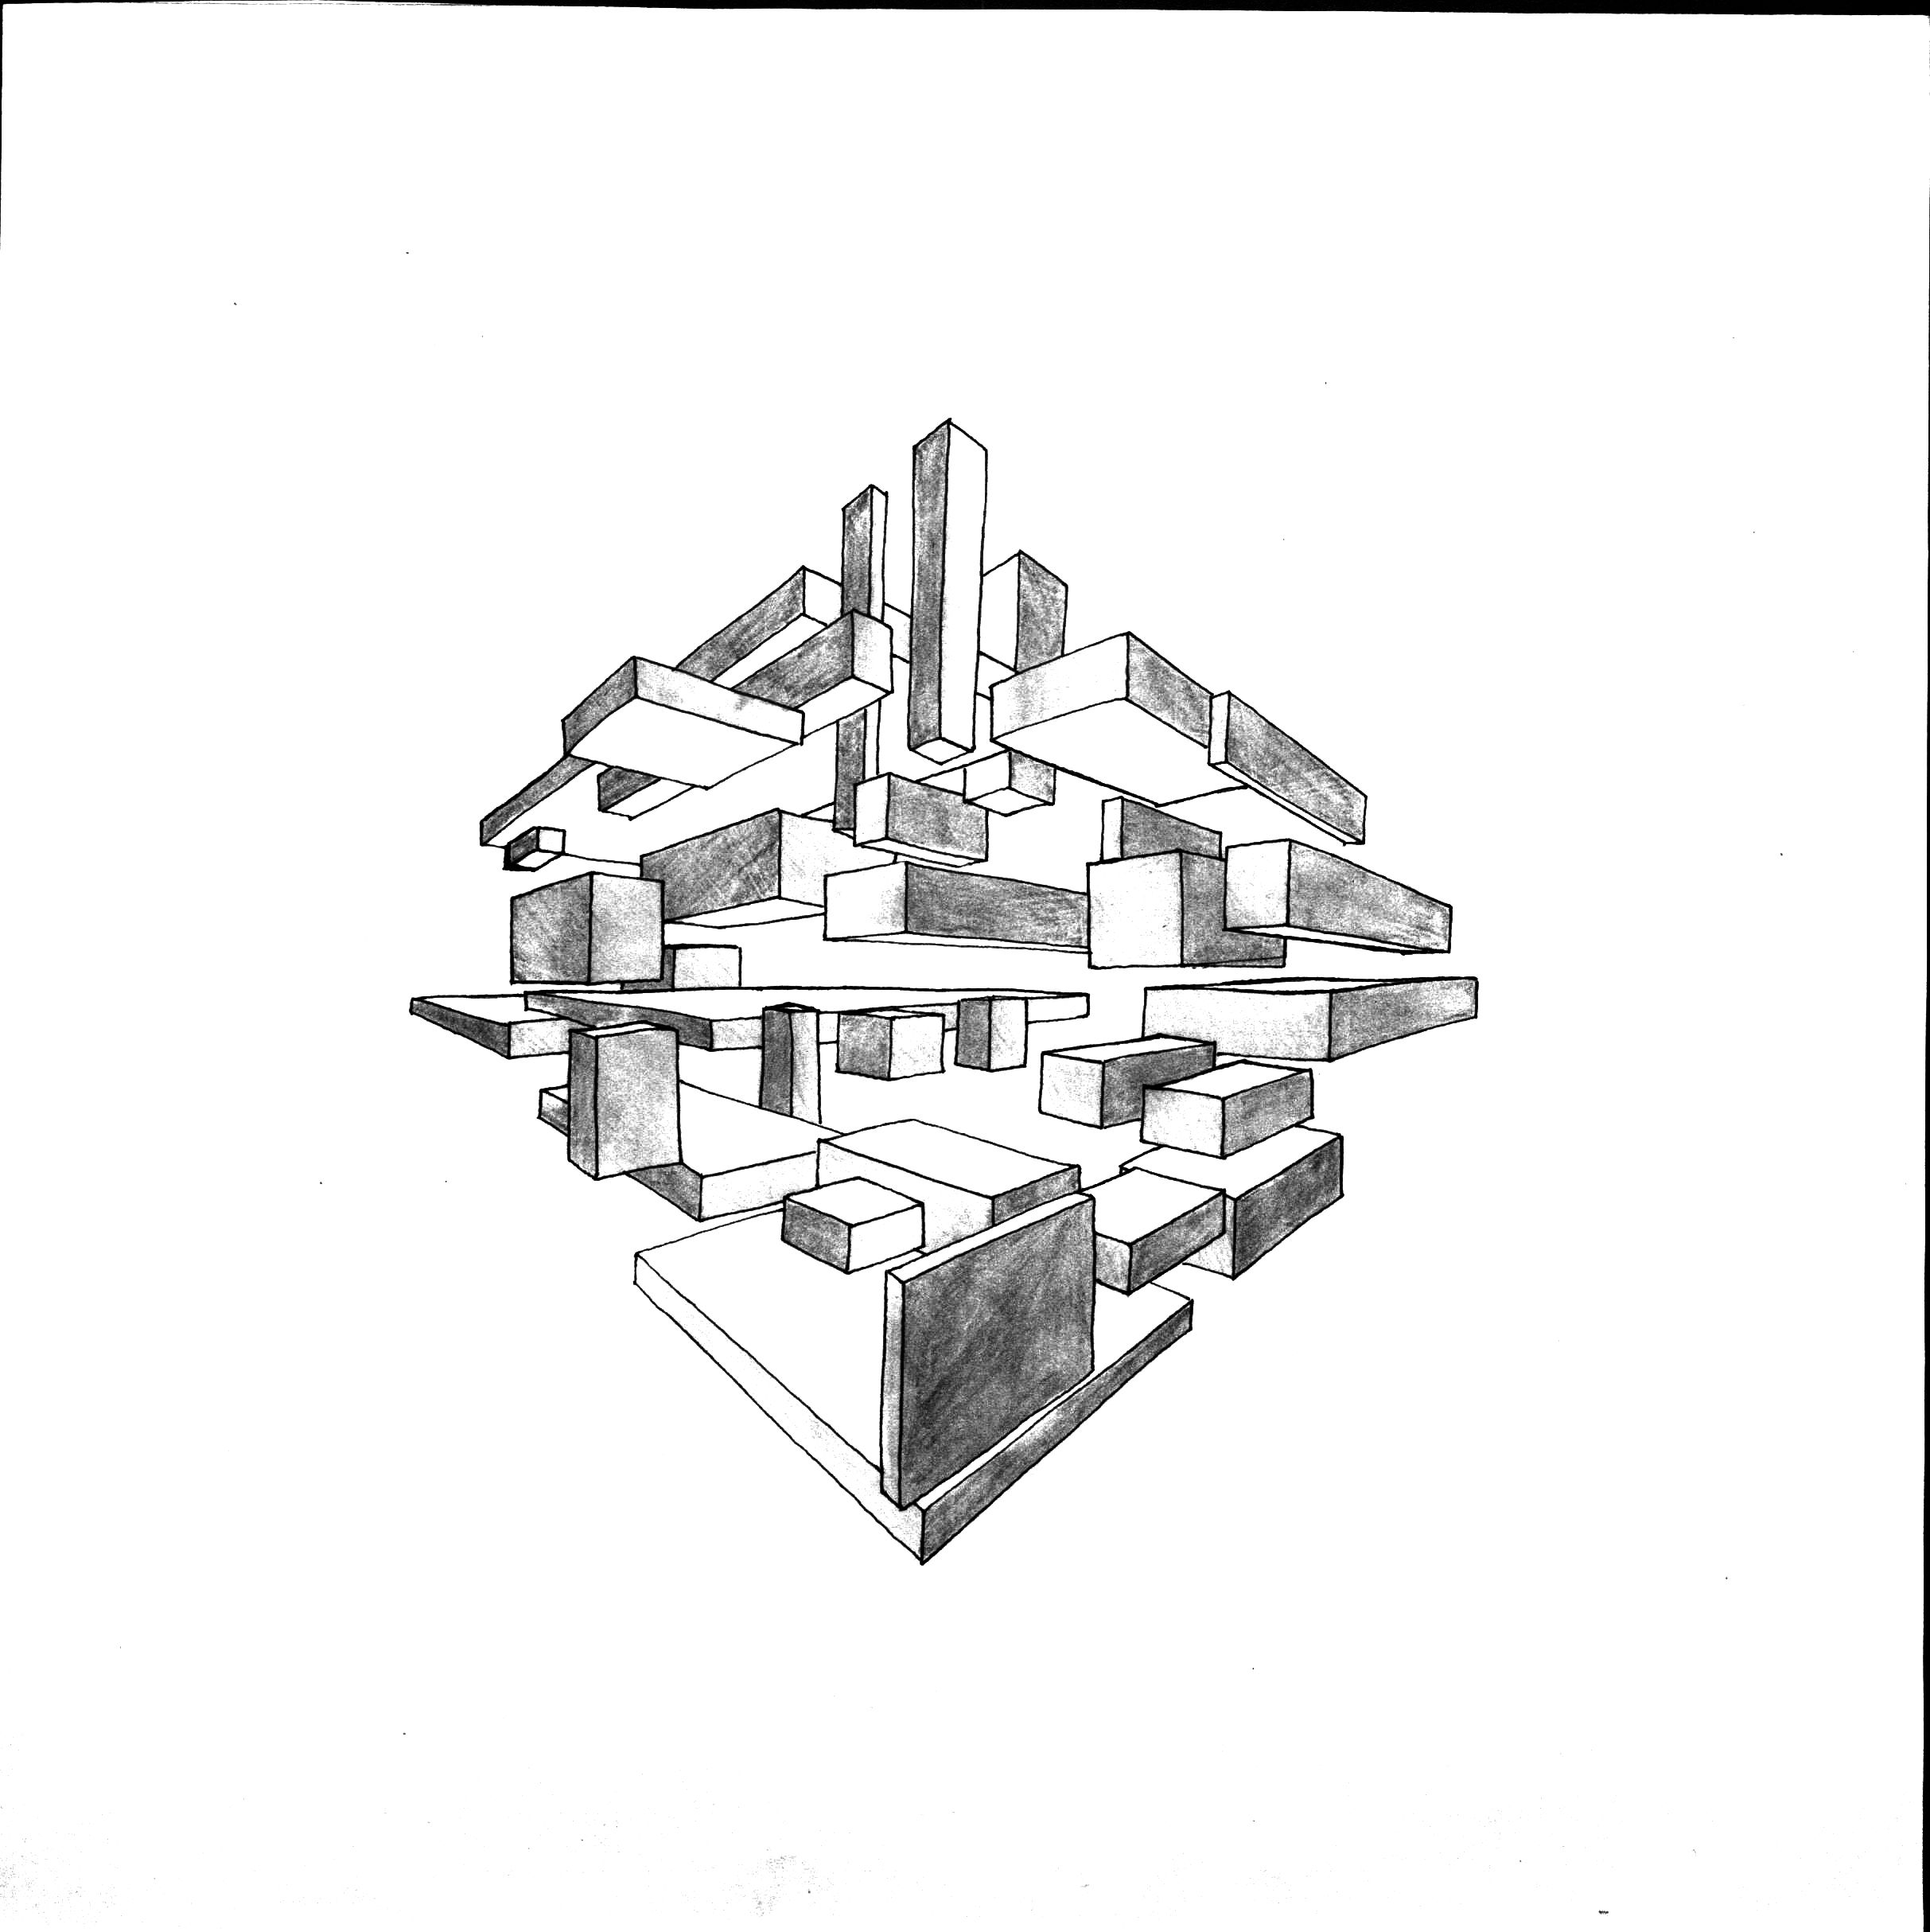 Architecture Blueprints Art two point perspective #art #design #architecture #drawing #sketch